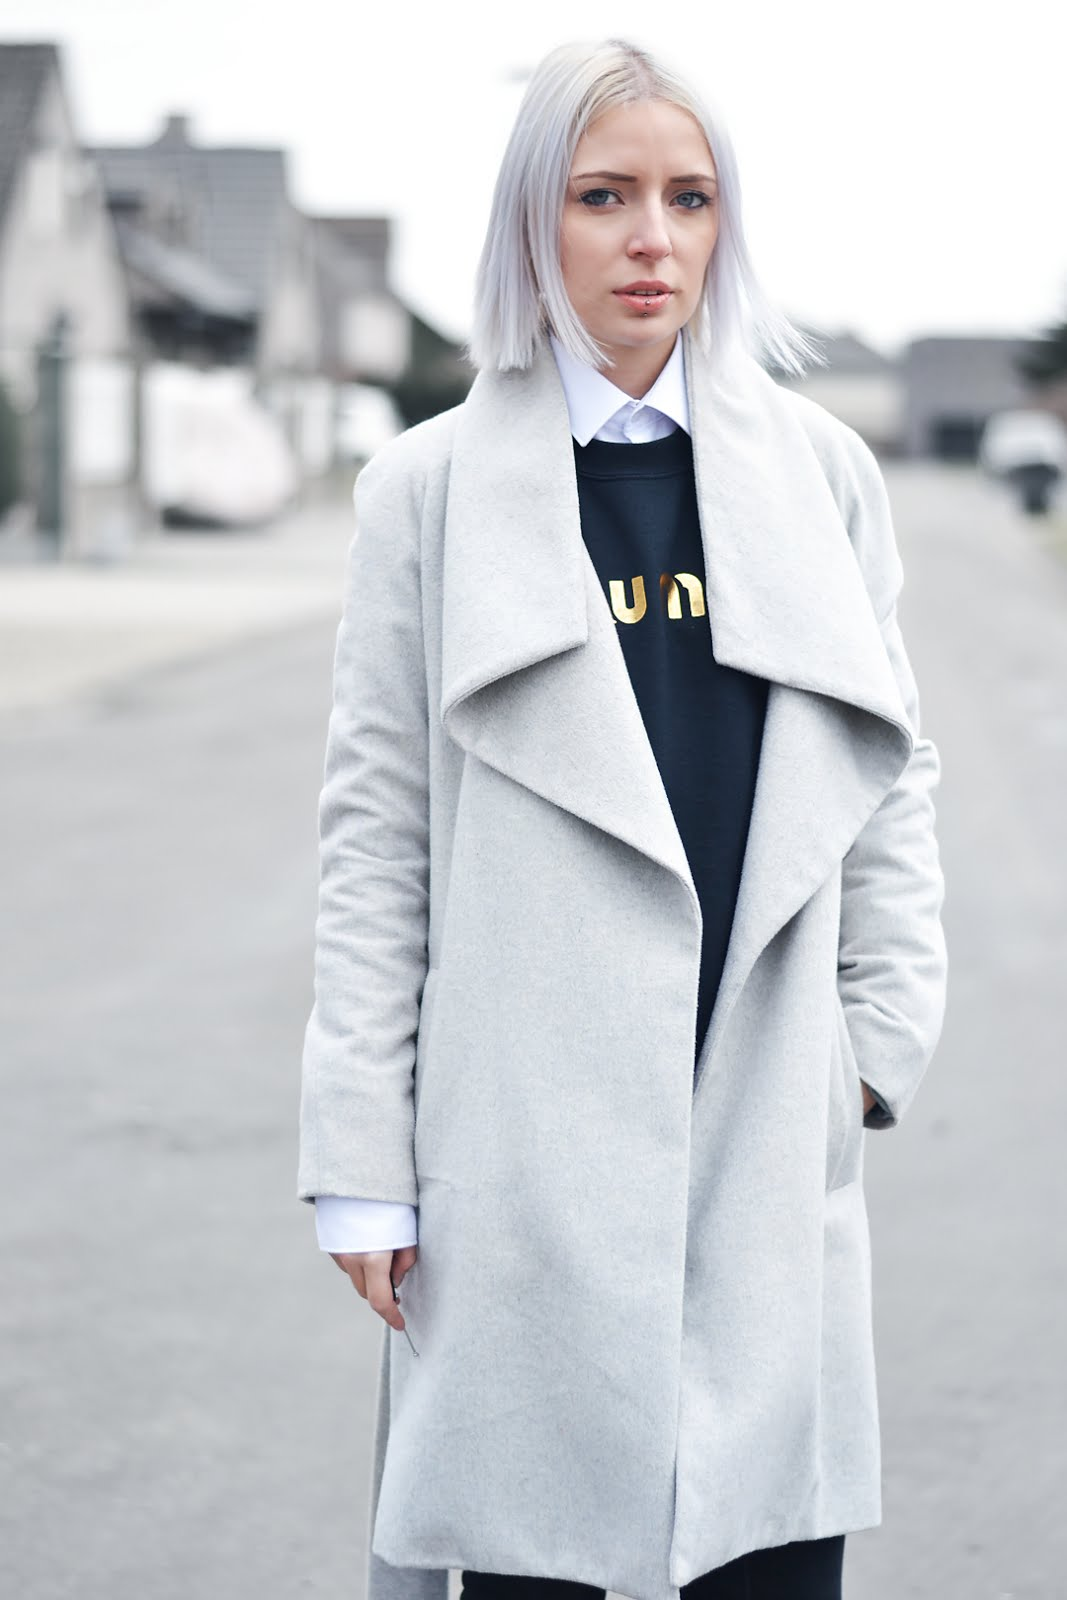 Grey coat, mango, brian lichtenberg, miu miu, shirt under sweater, adidas superstar, belgian fashion blogger, belgische mode blogger, street style, minimal